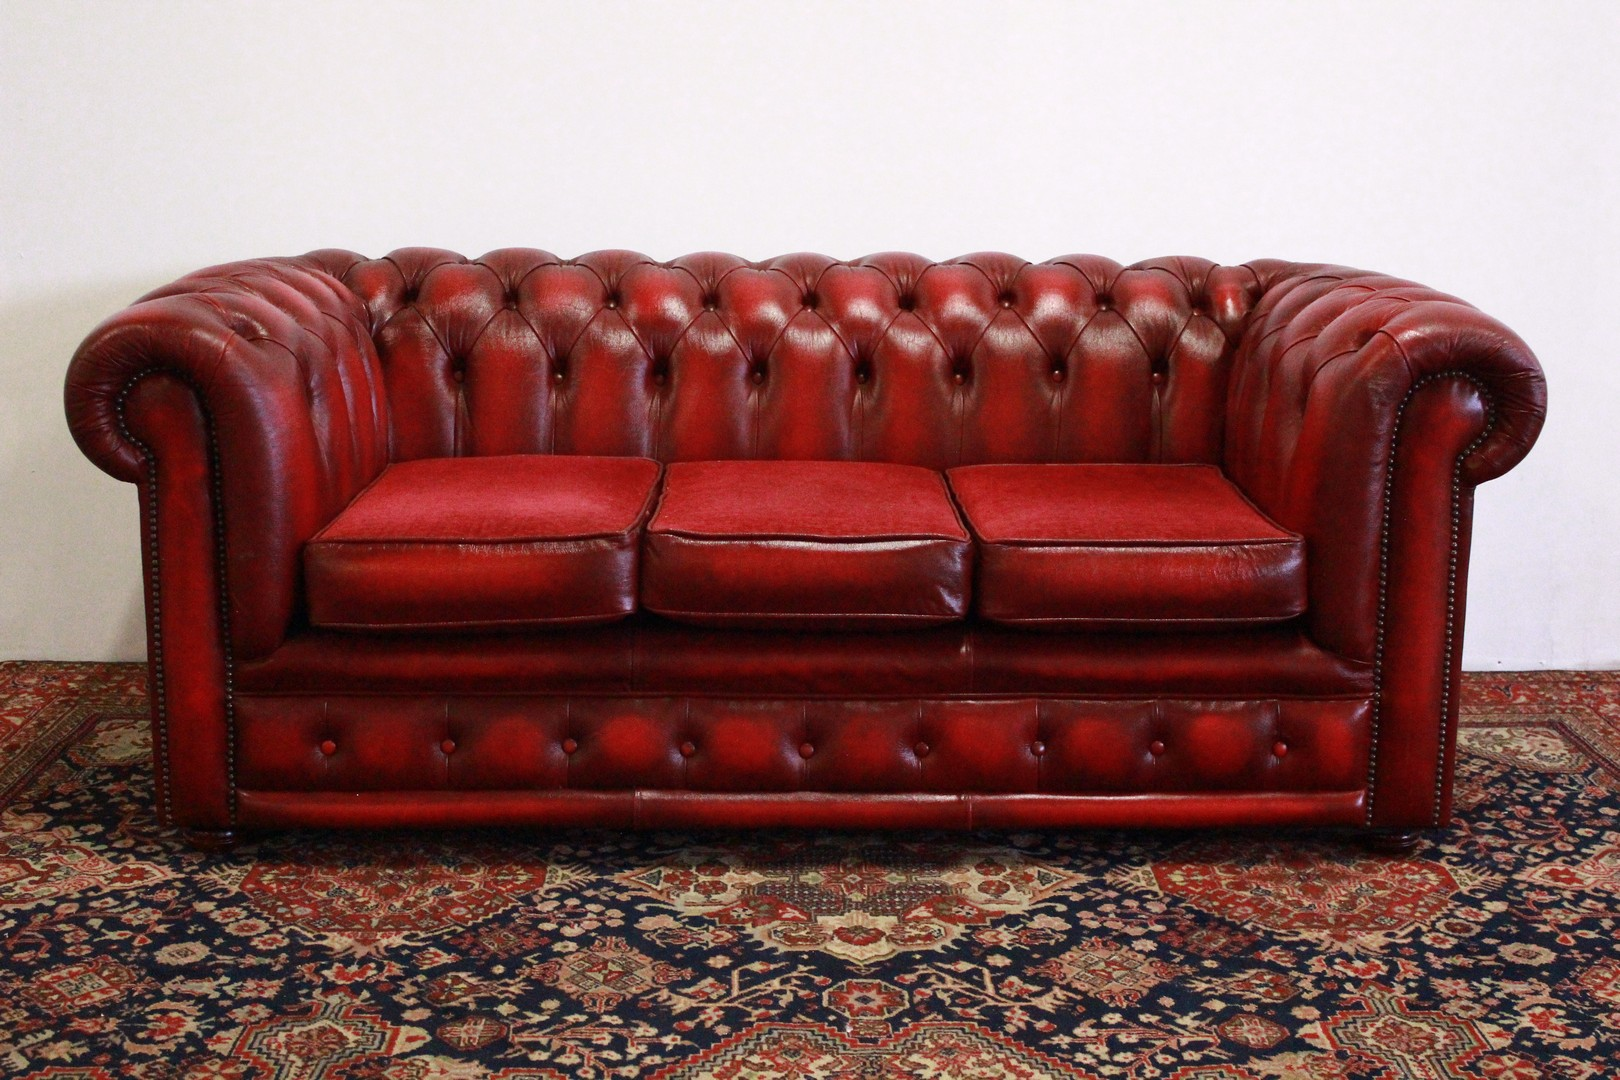 Chesterfield Divano Originale.Divano Chesterfield Club 3 Posti Bordeaux 704